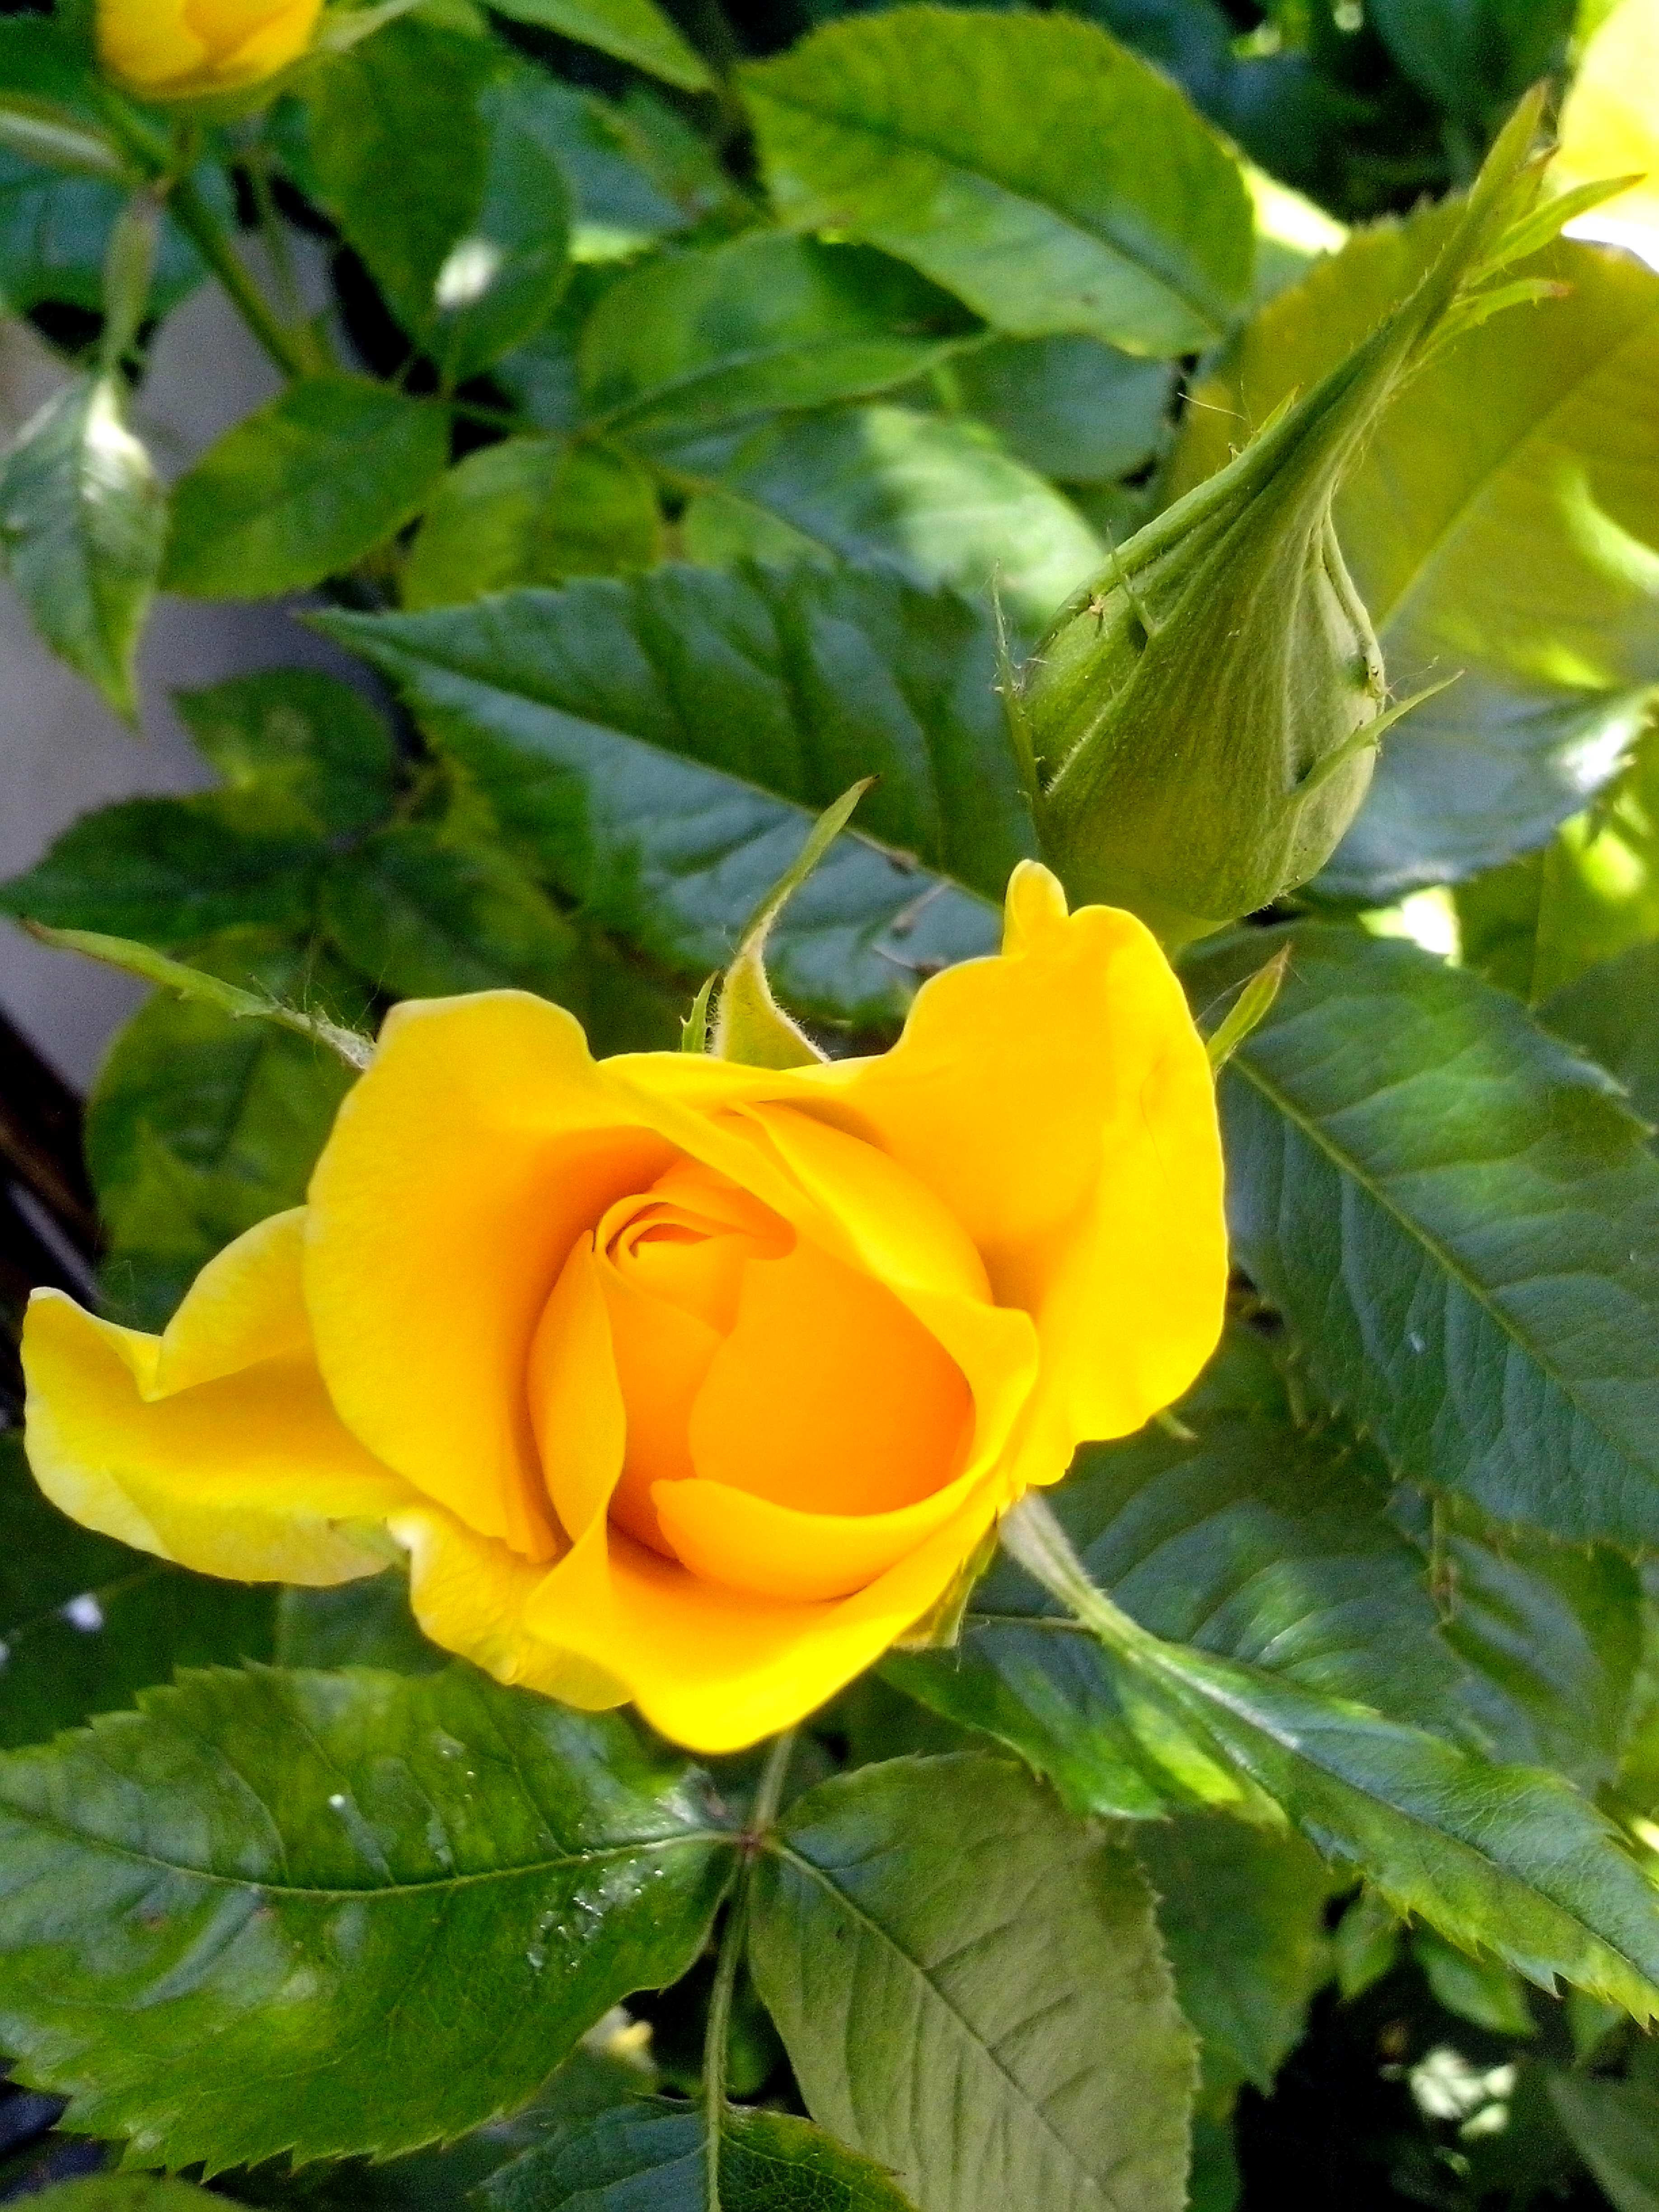 free picture: beautiful, bright yellow, rose, flower